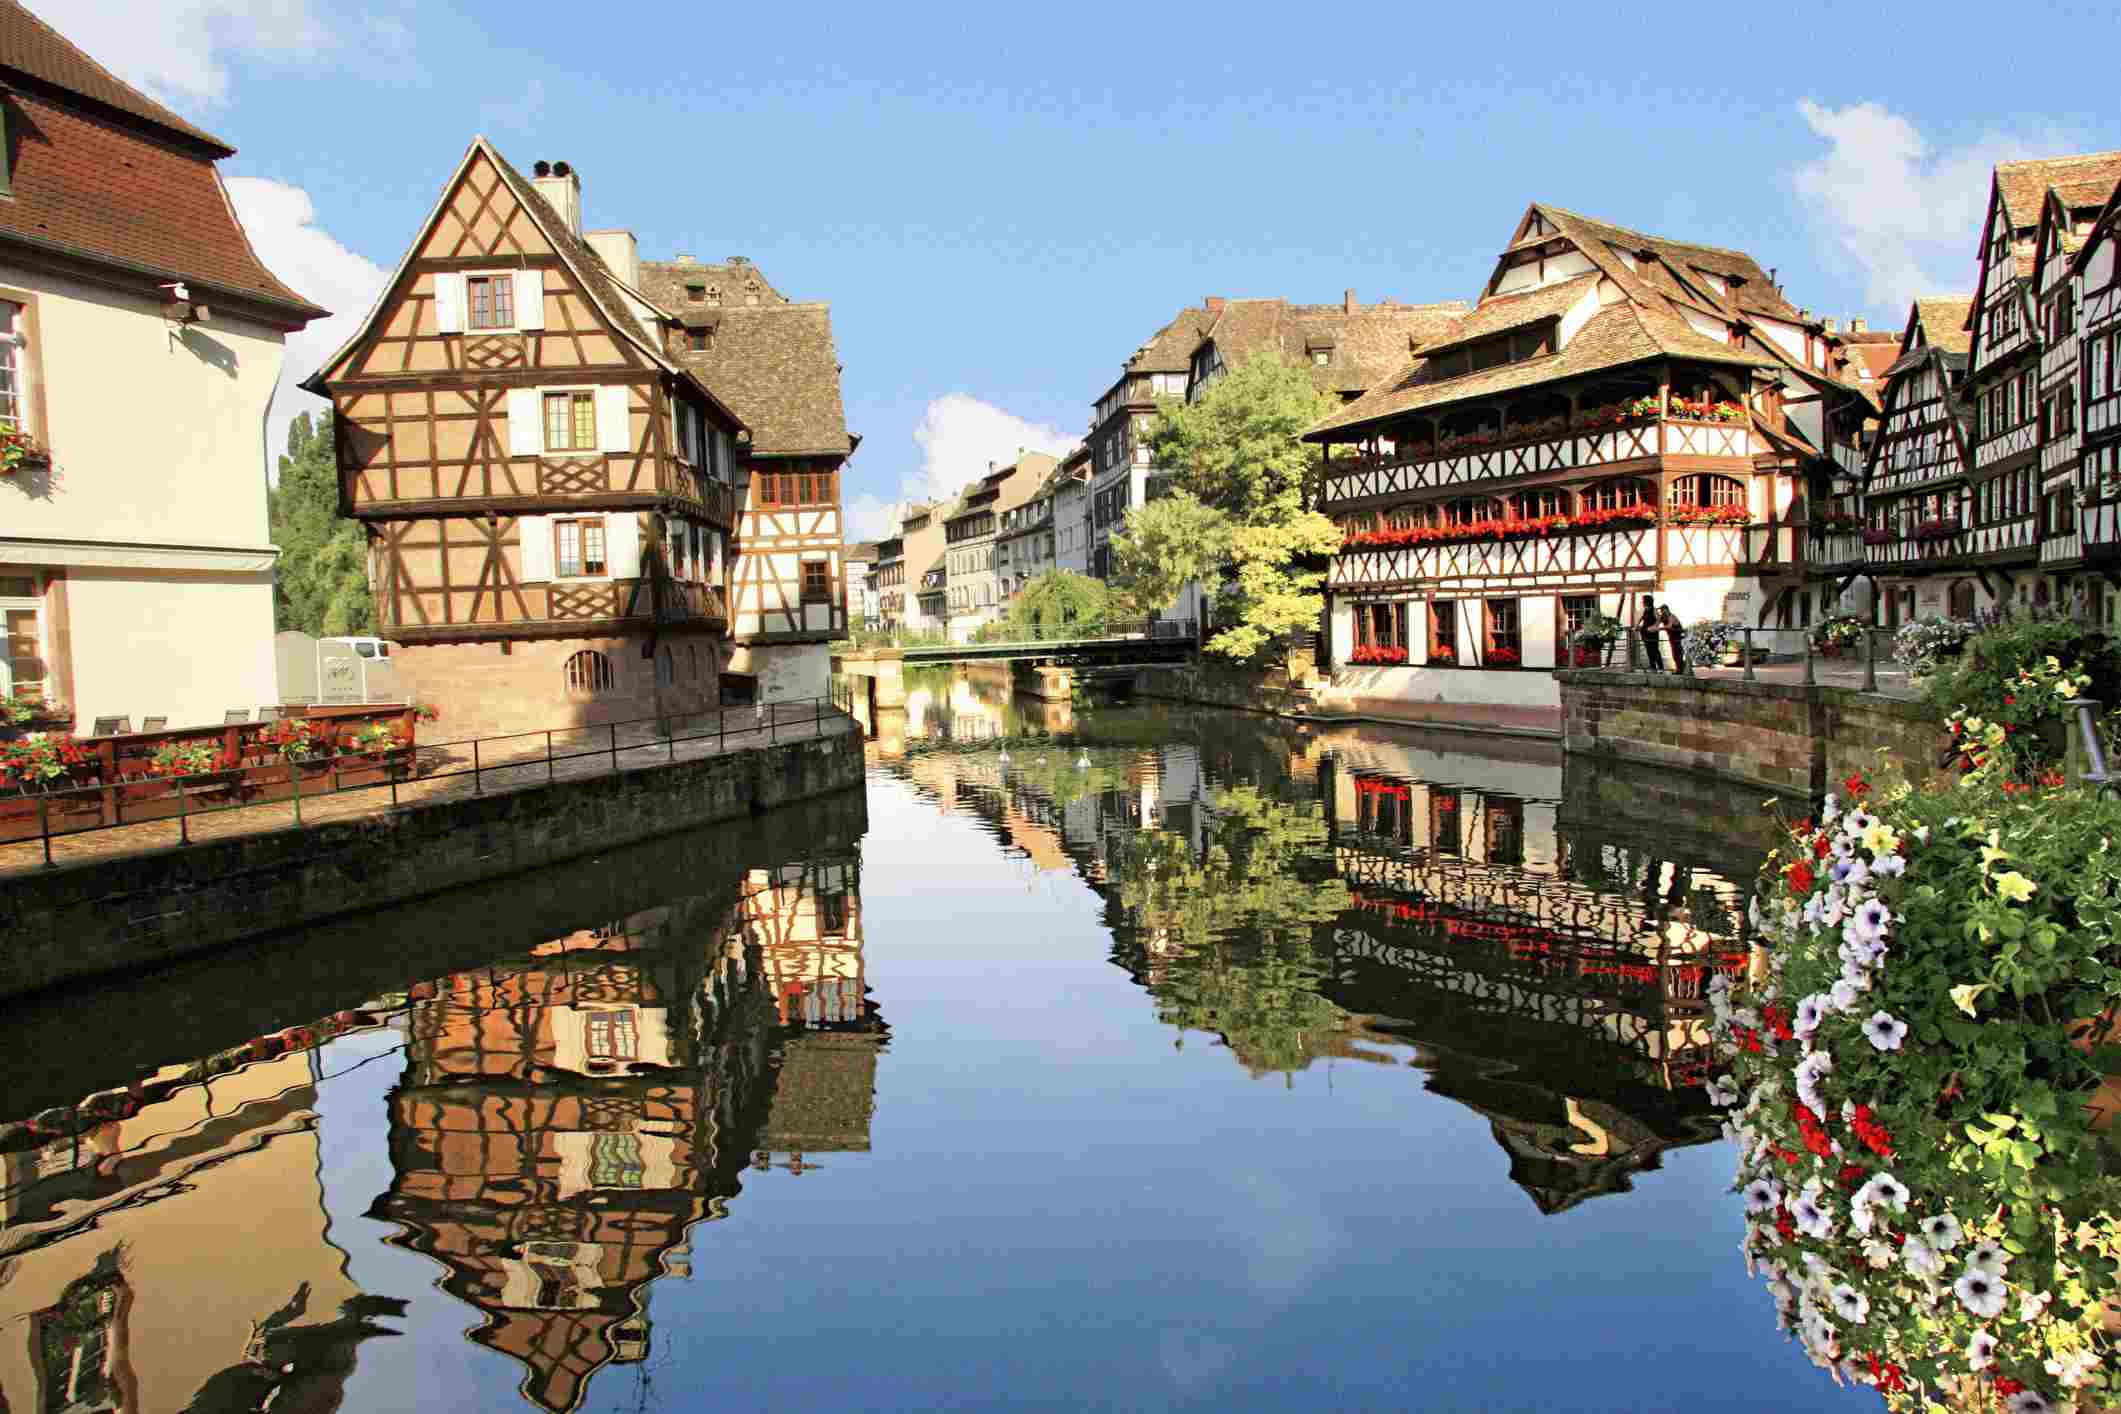 Timbered buildings, La Petite France Canal, Strasbourg, Alsace, France, Europe